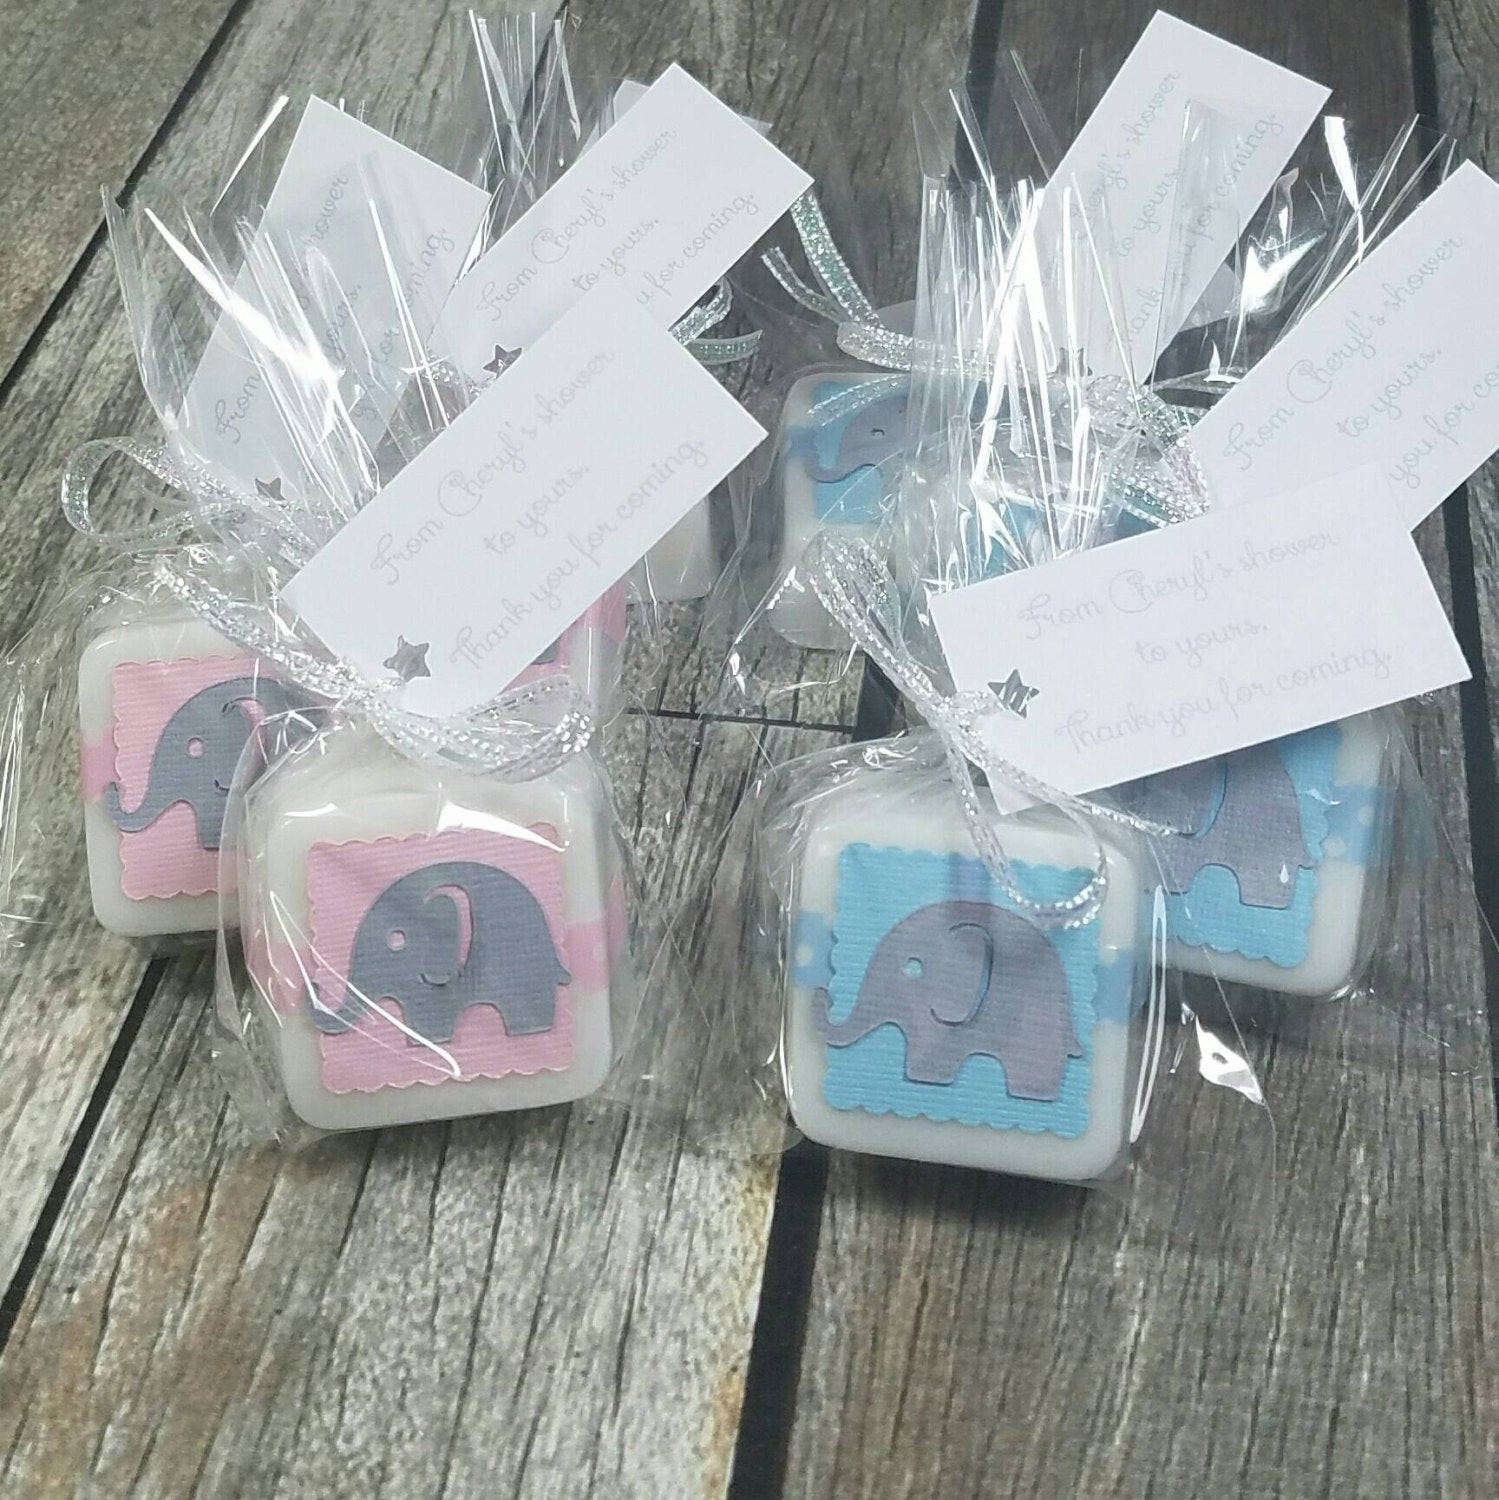 Gender Reveal Party Favor Ideas  Gender reveal ideas party favors twin baby shower favors